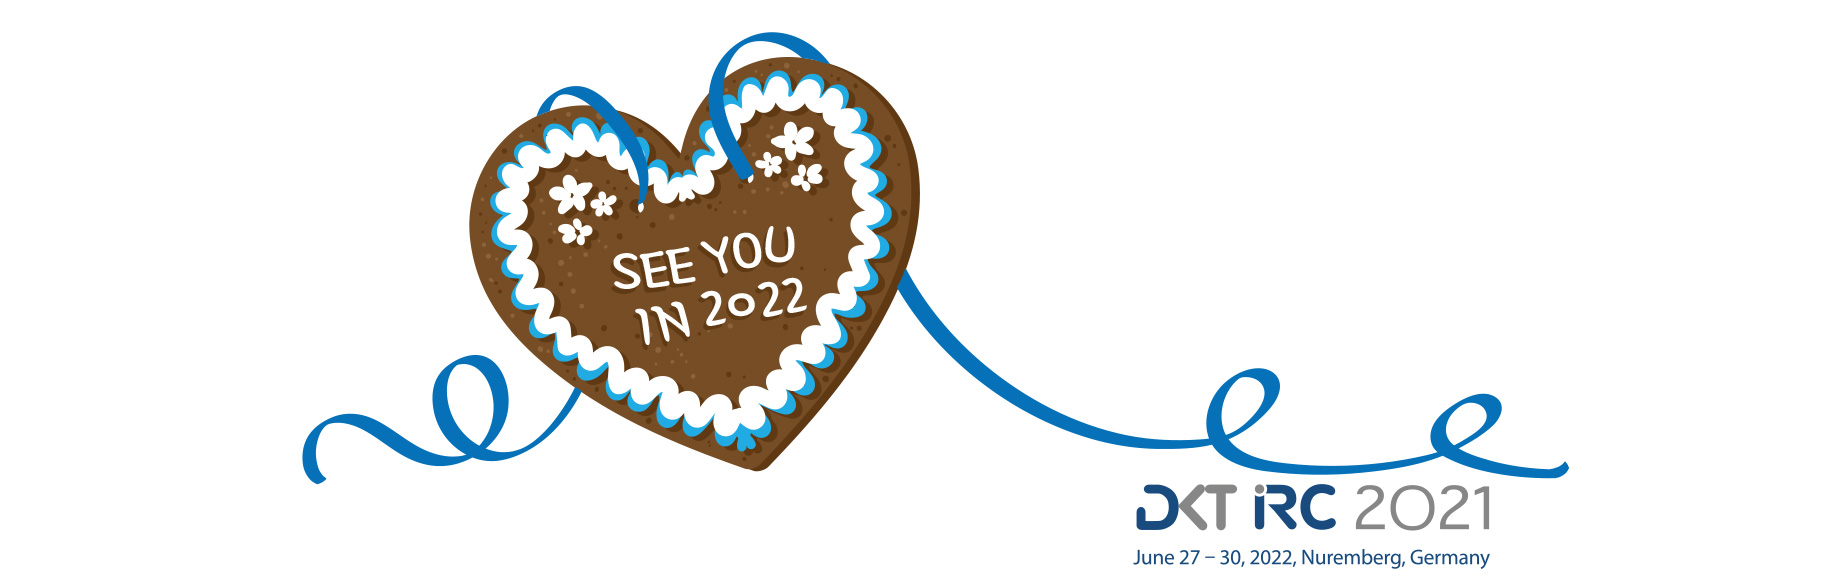 See you in 2022 – DKT 2021